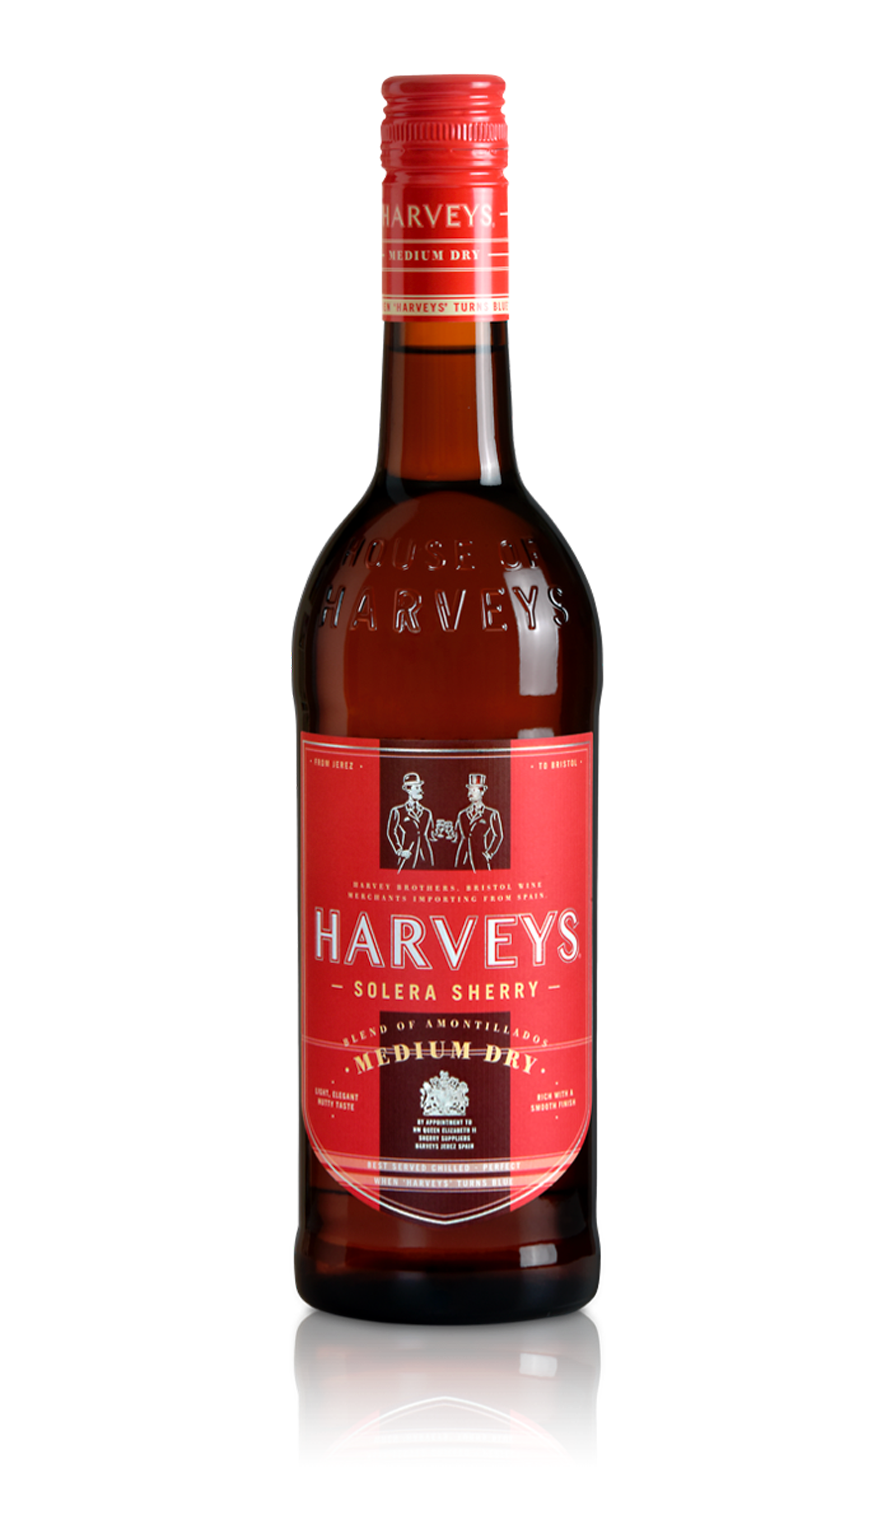 Botella Harveys Medium Dry